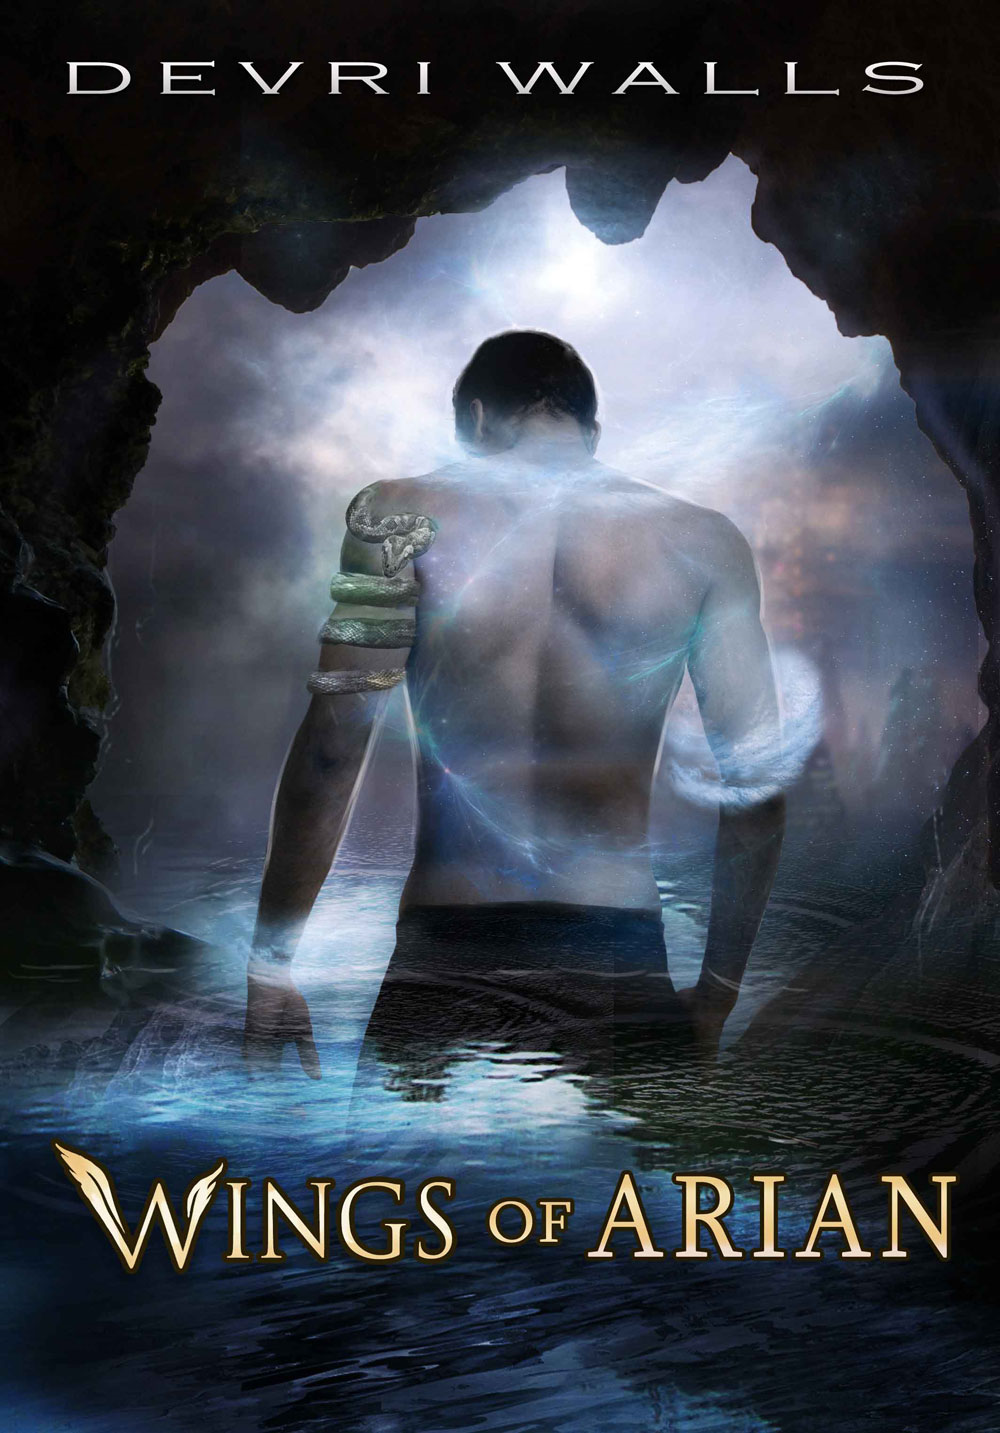 Wings of Arian (For fans of Julie Kagawa, Stephanie Meyer, J.K. Rowling, Cinda Williams Chima) By: Devri Walls